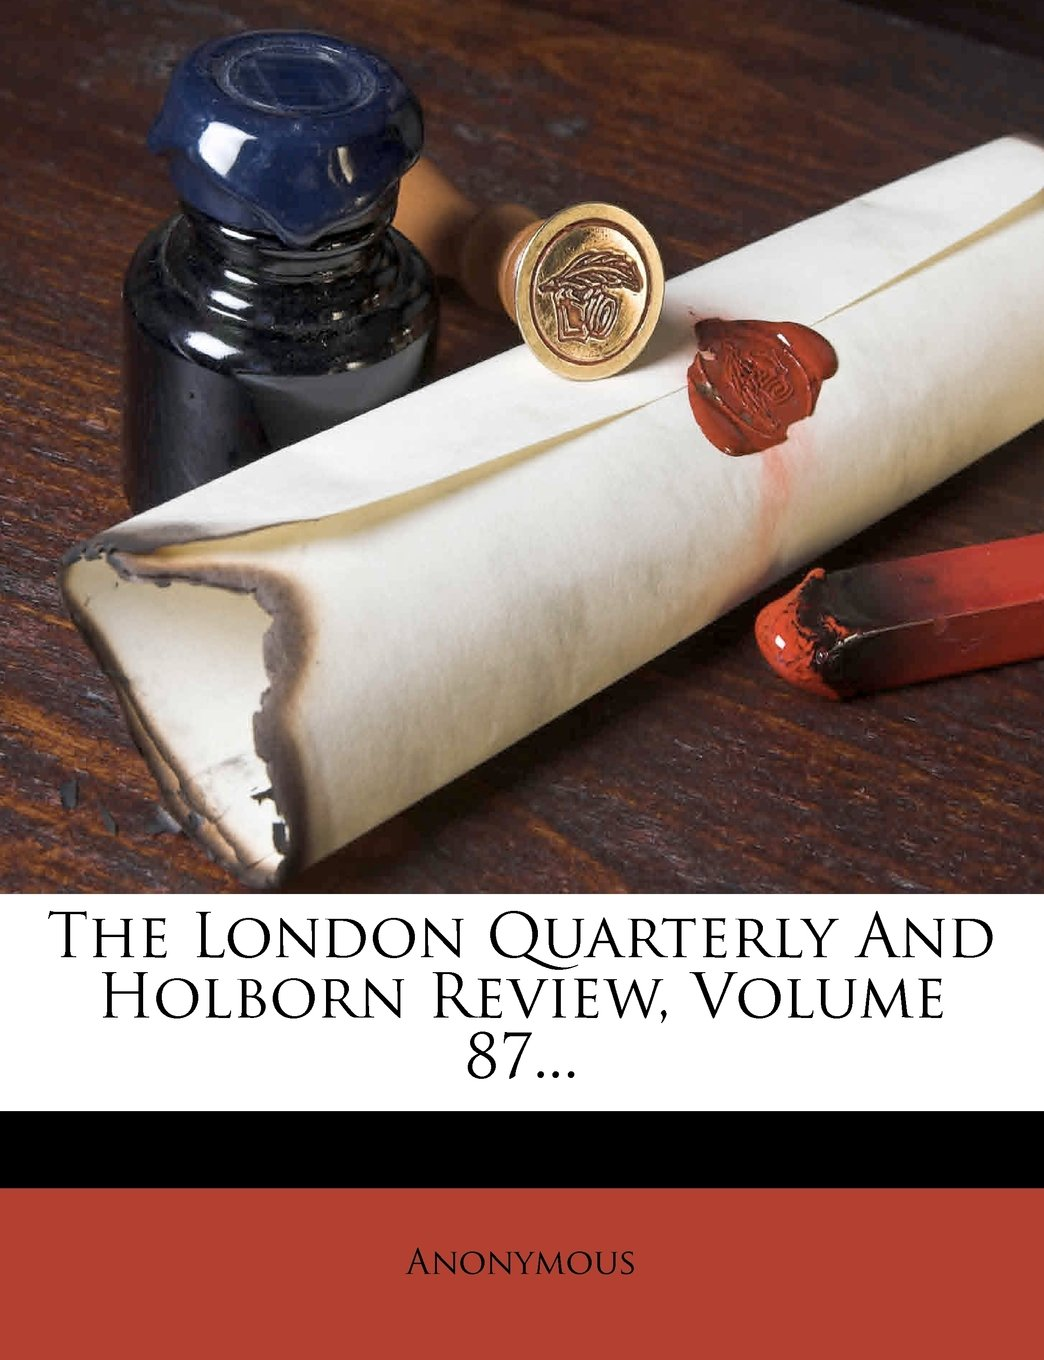 The London Quarterly And Holborn Review, Volume 87... pdf